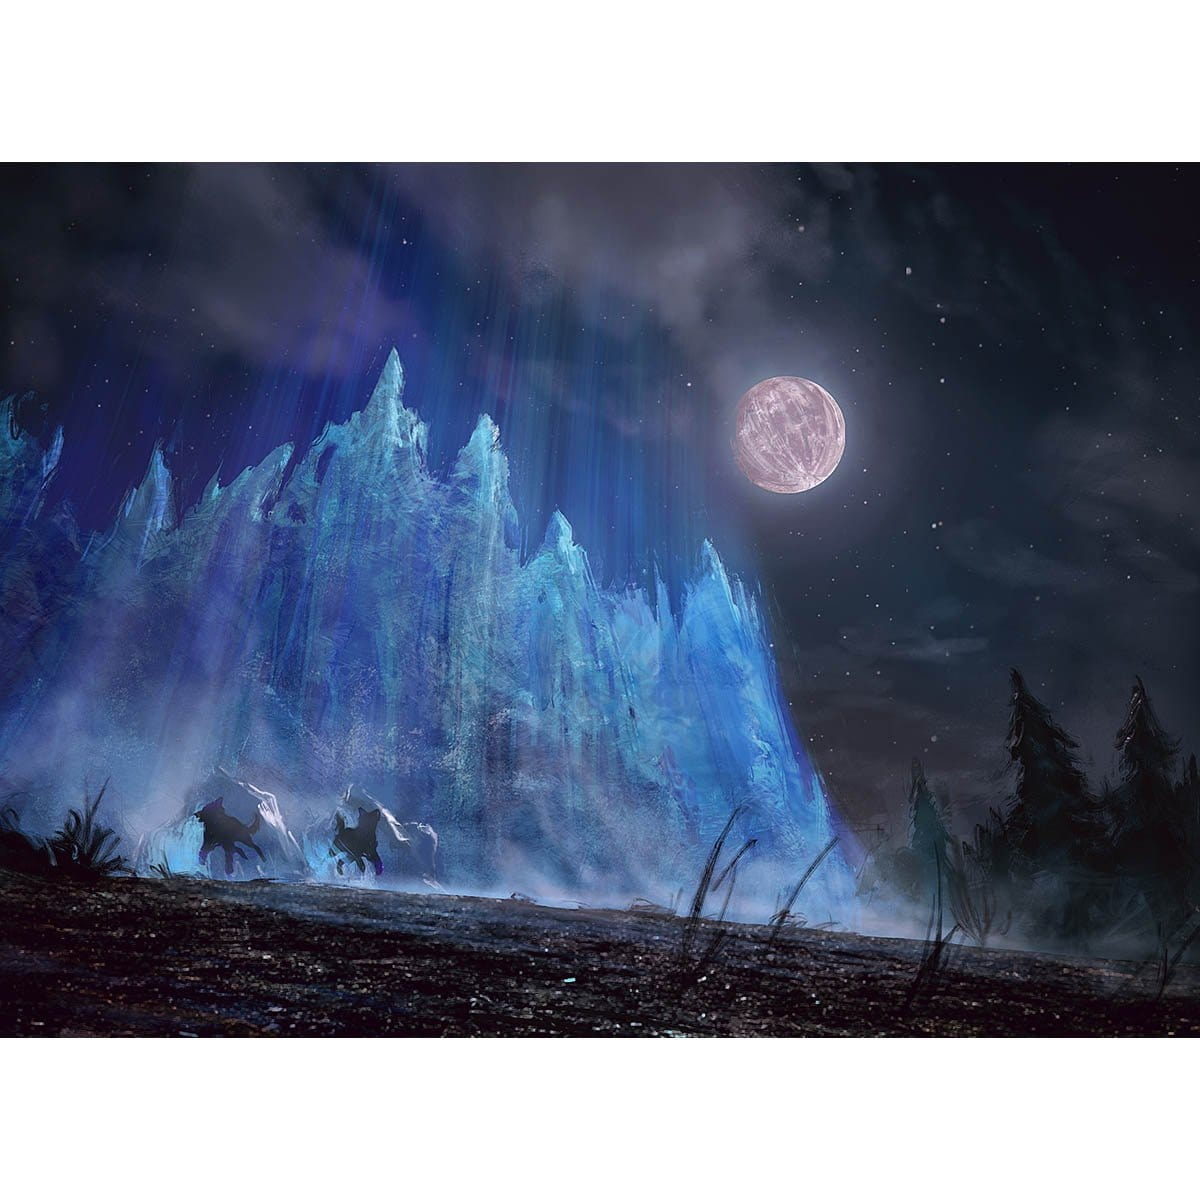 Wall of Frost Print - Print - Original Magic Art - Accessories for Magic the Gathering and other card games